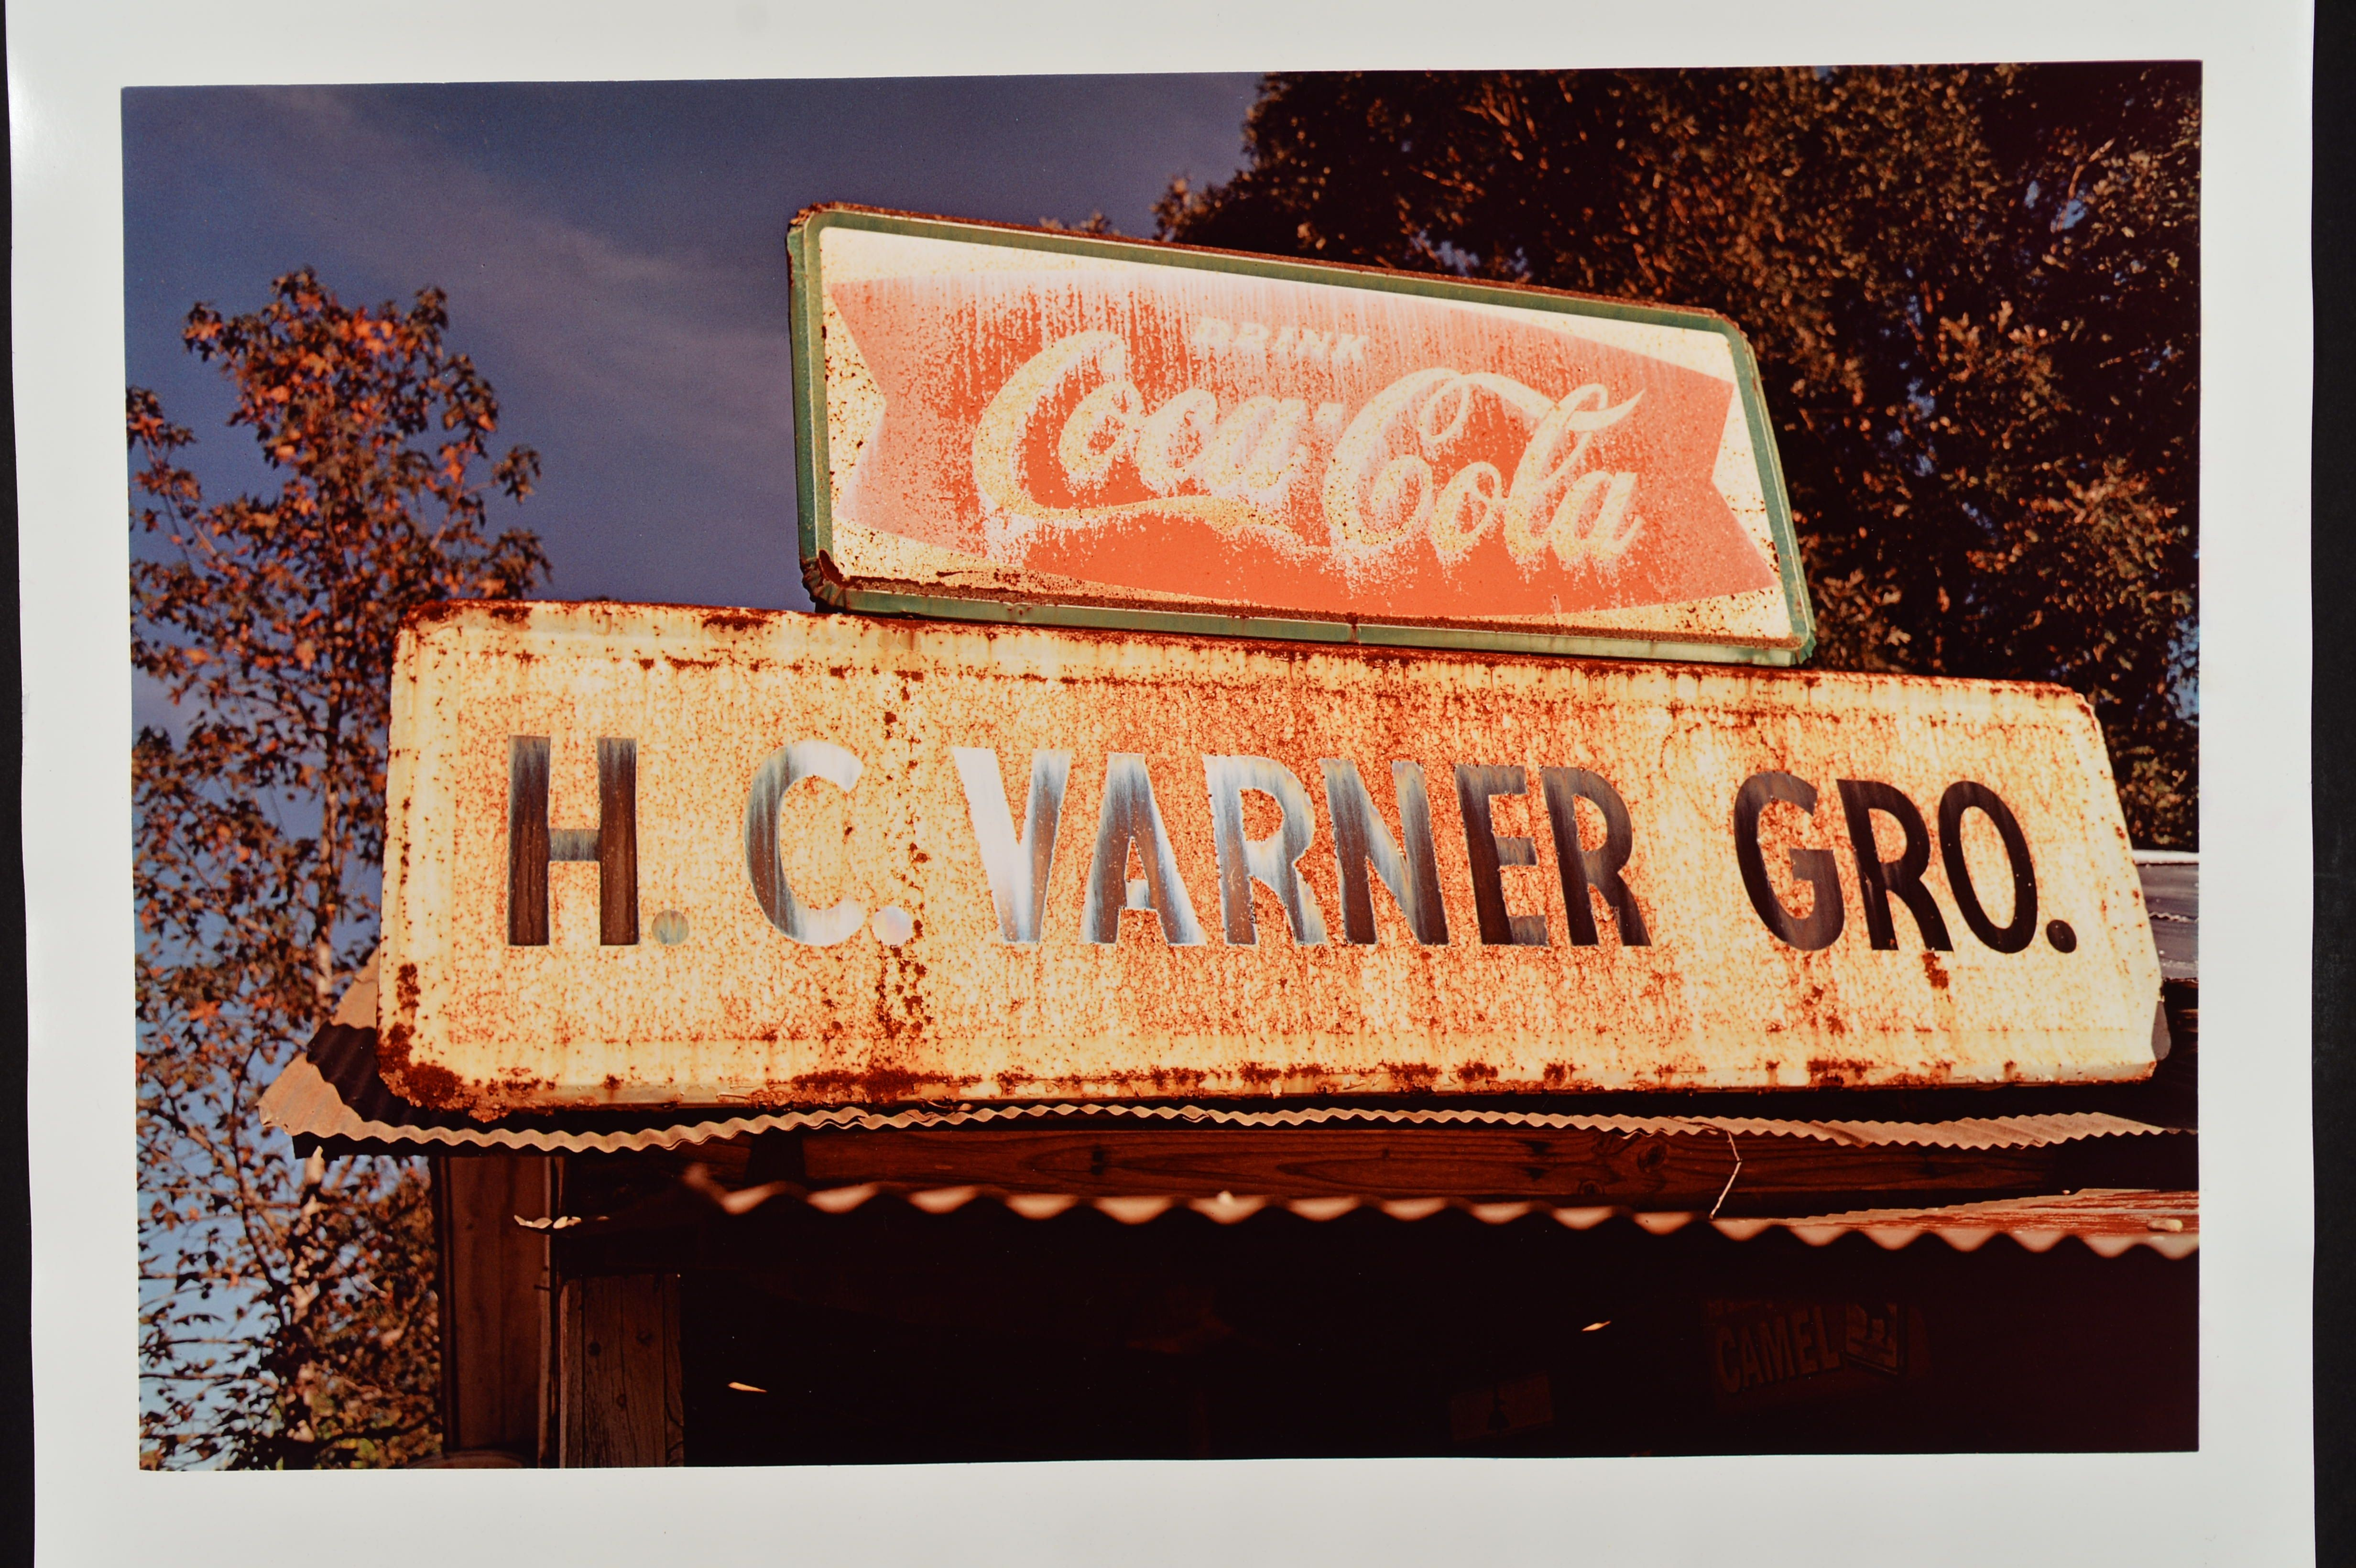 1982.1.4 (Hc VARNER Groc Sign) RAW 221